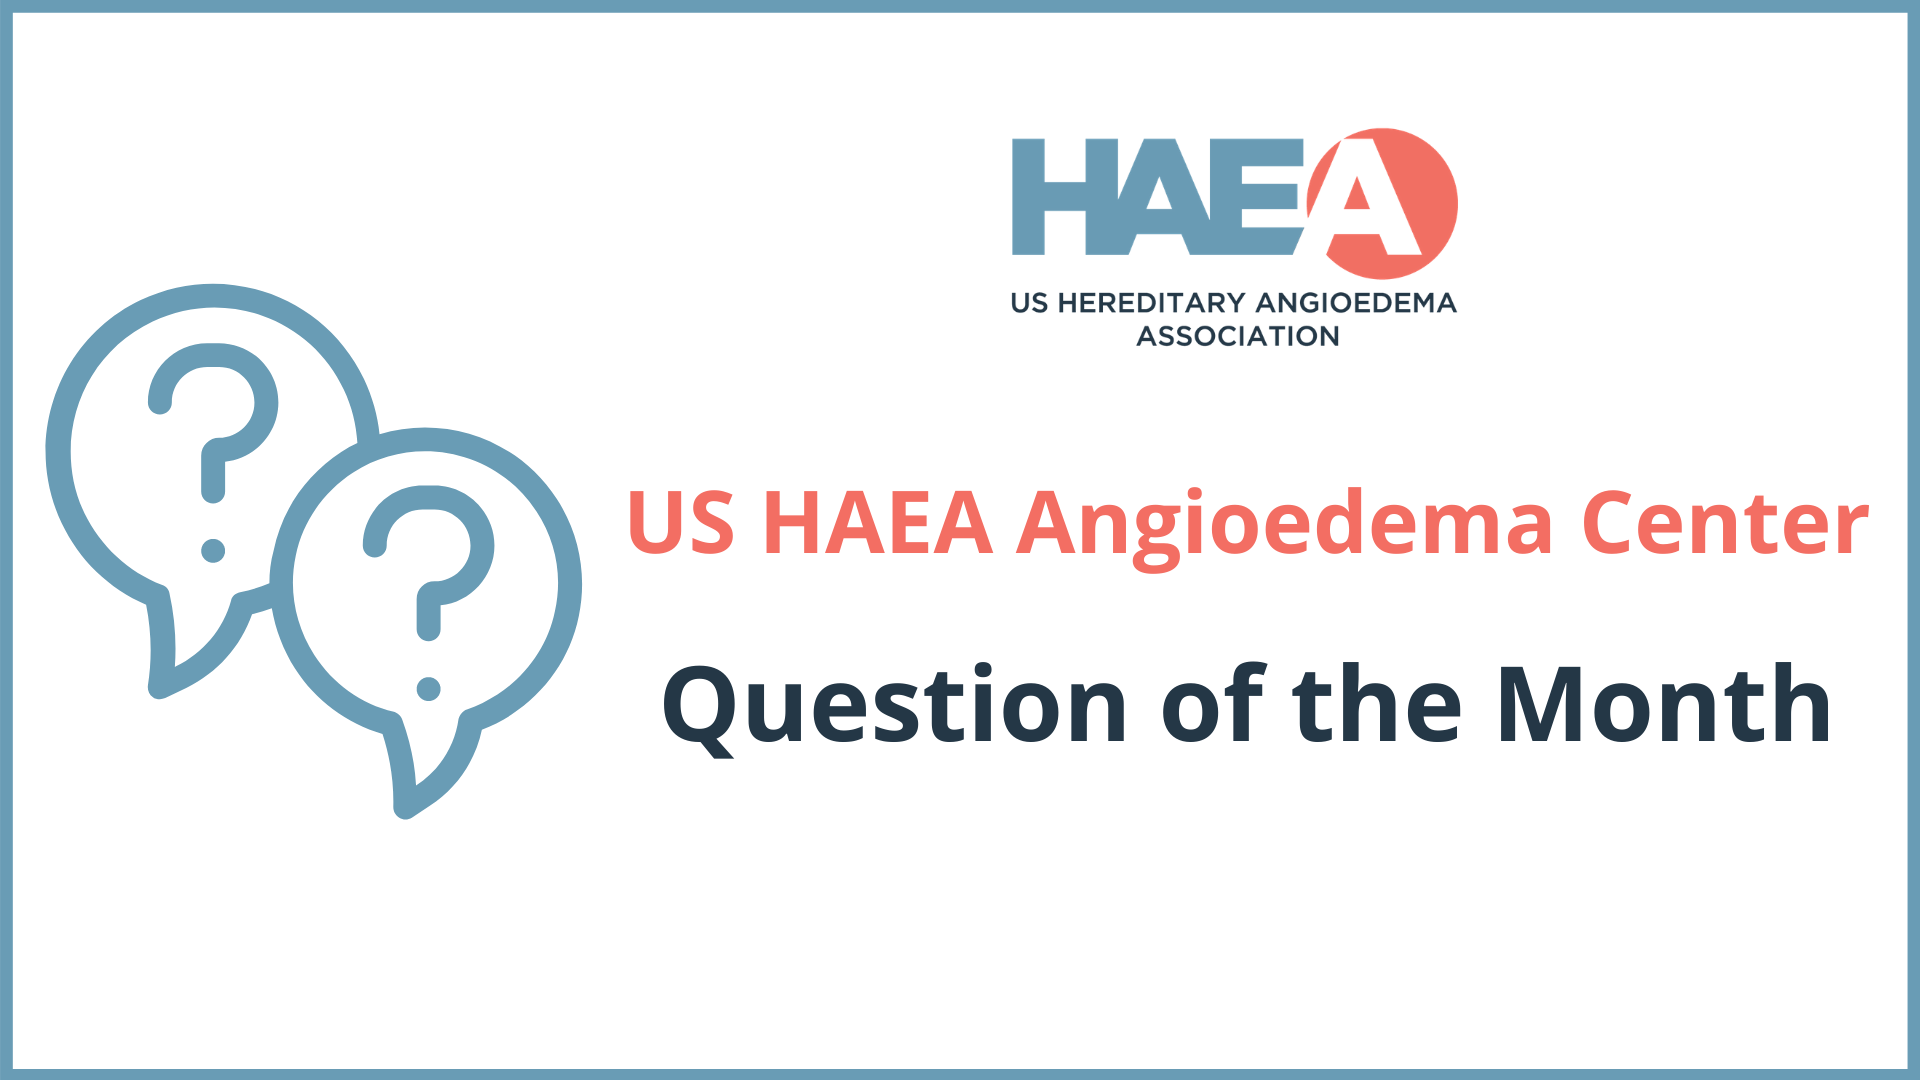 Should People with Hereditary Angioedema (HAE) Donate Blood?